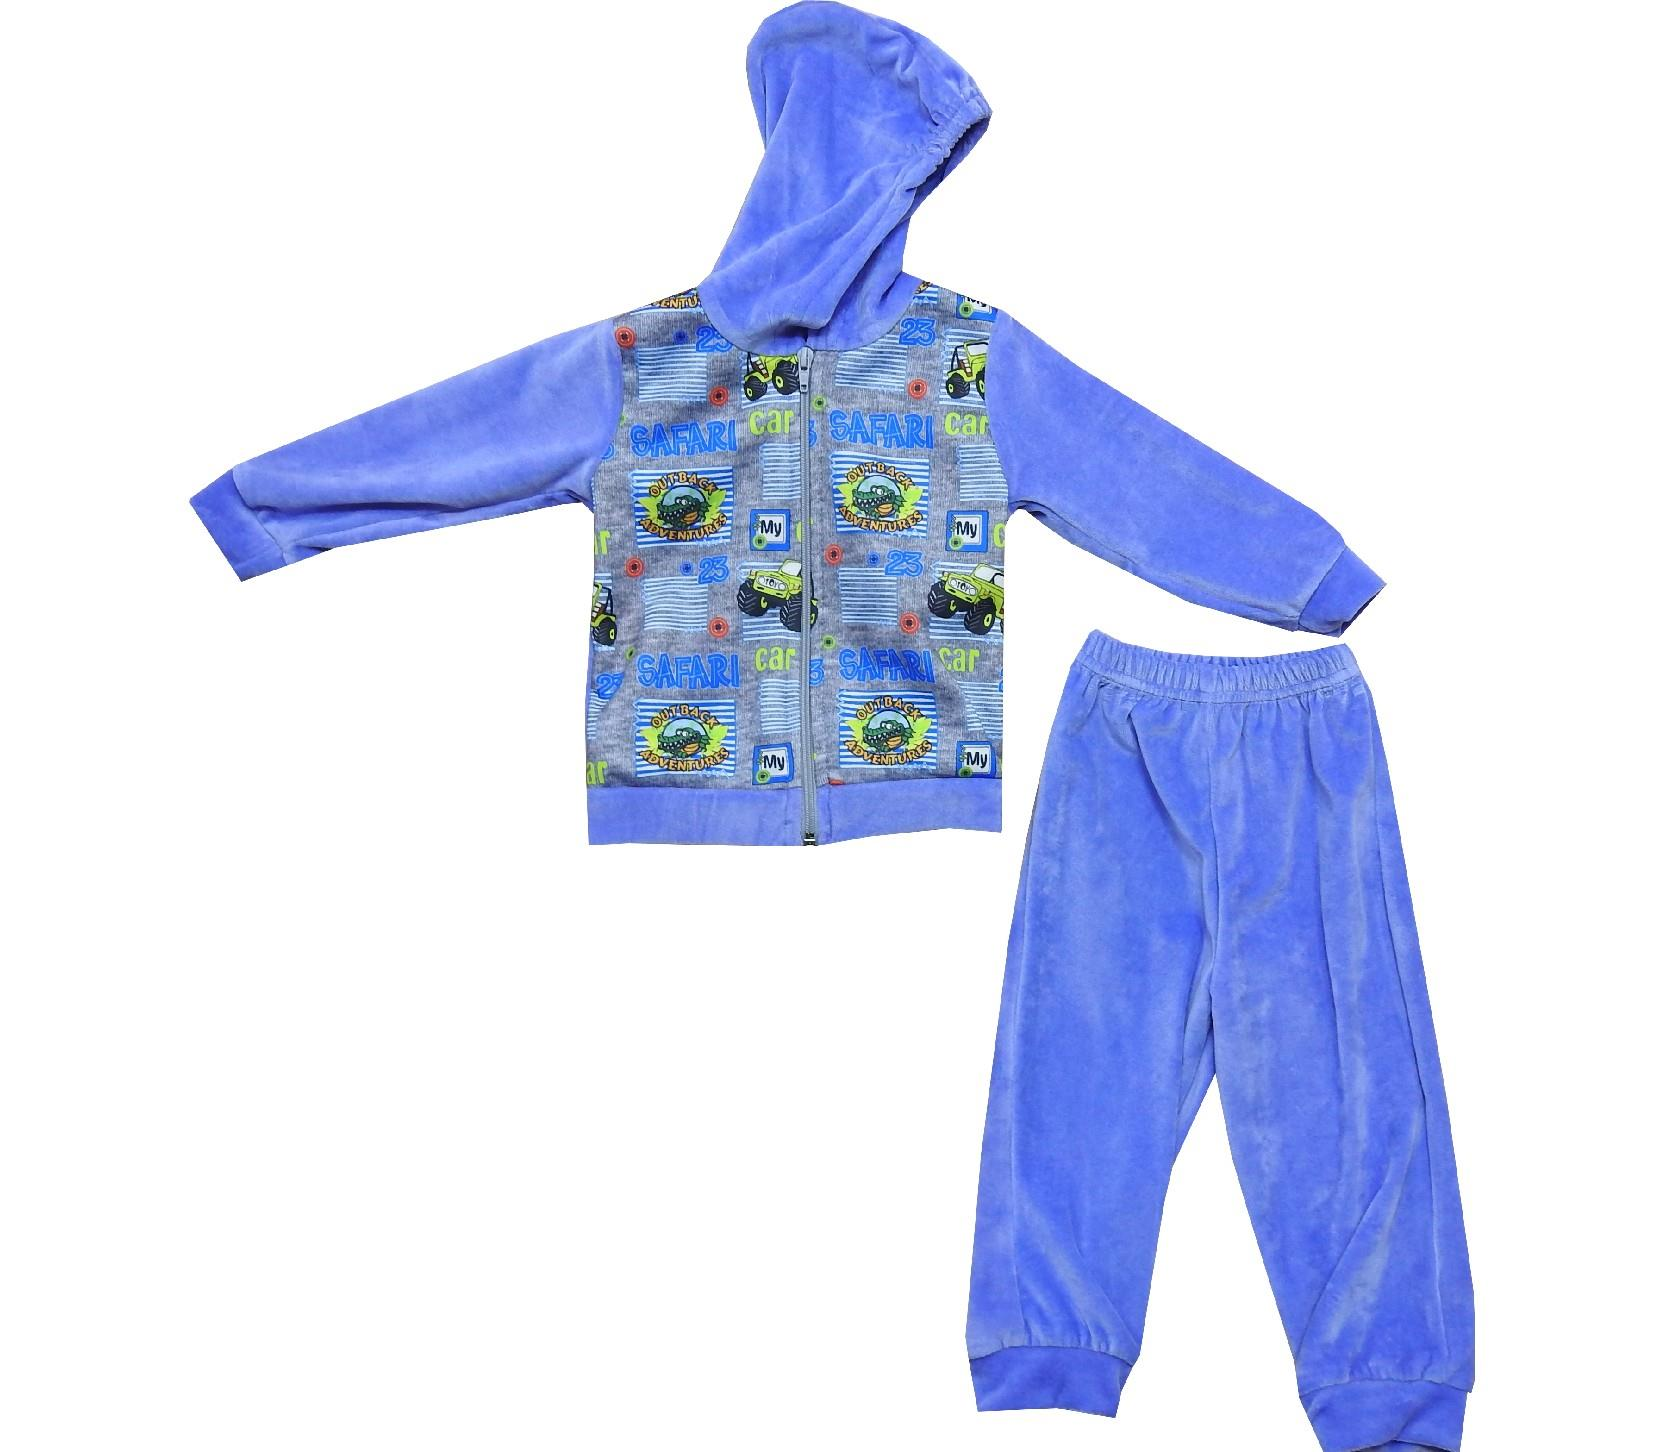 Wholesale safari embroidery velvet hooded sweatshirt and trouser for boy (1-2-3 age)